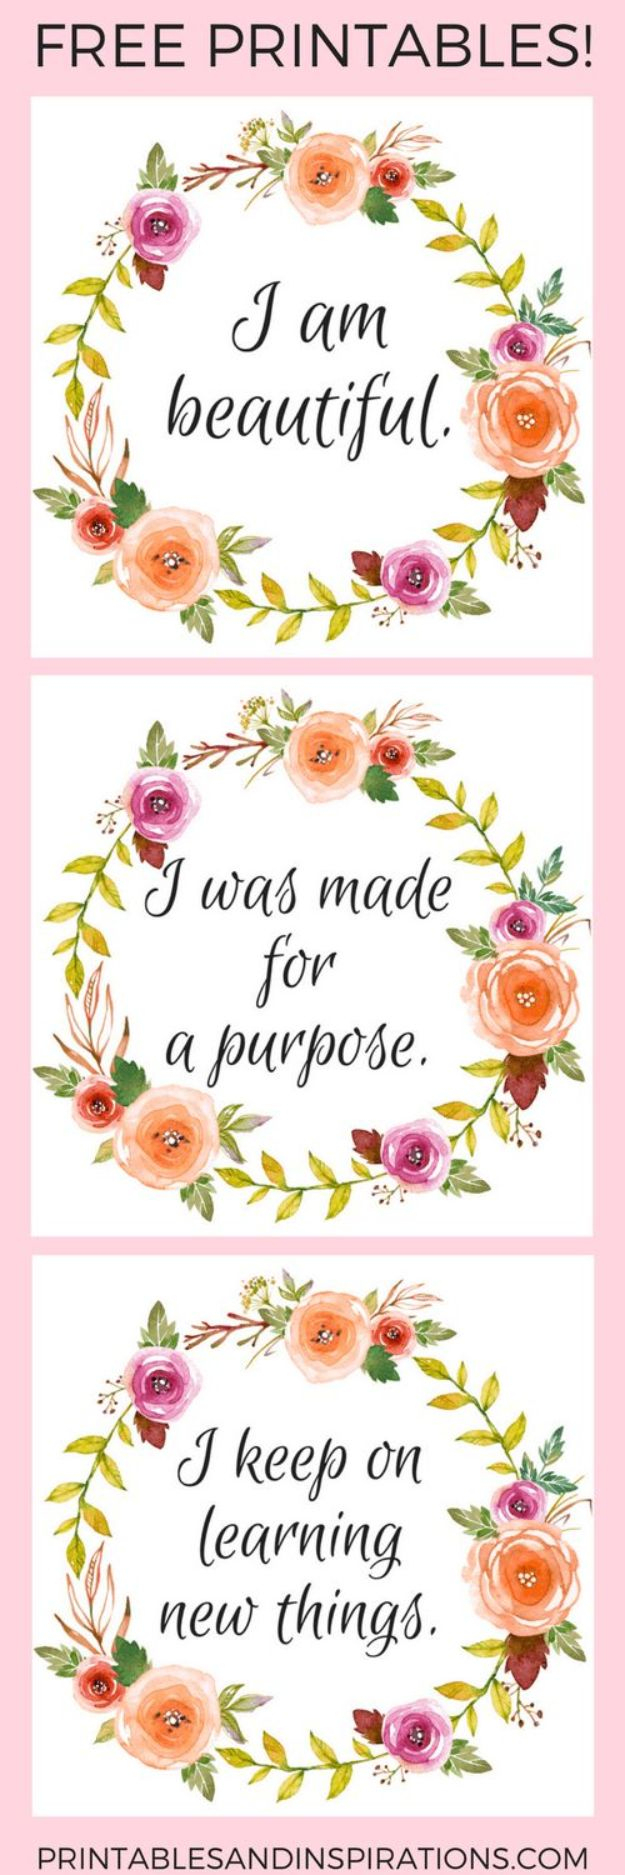 50 Best Free Printables For Craft Projects - Free Printable Quotes Templates